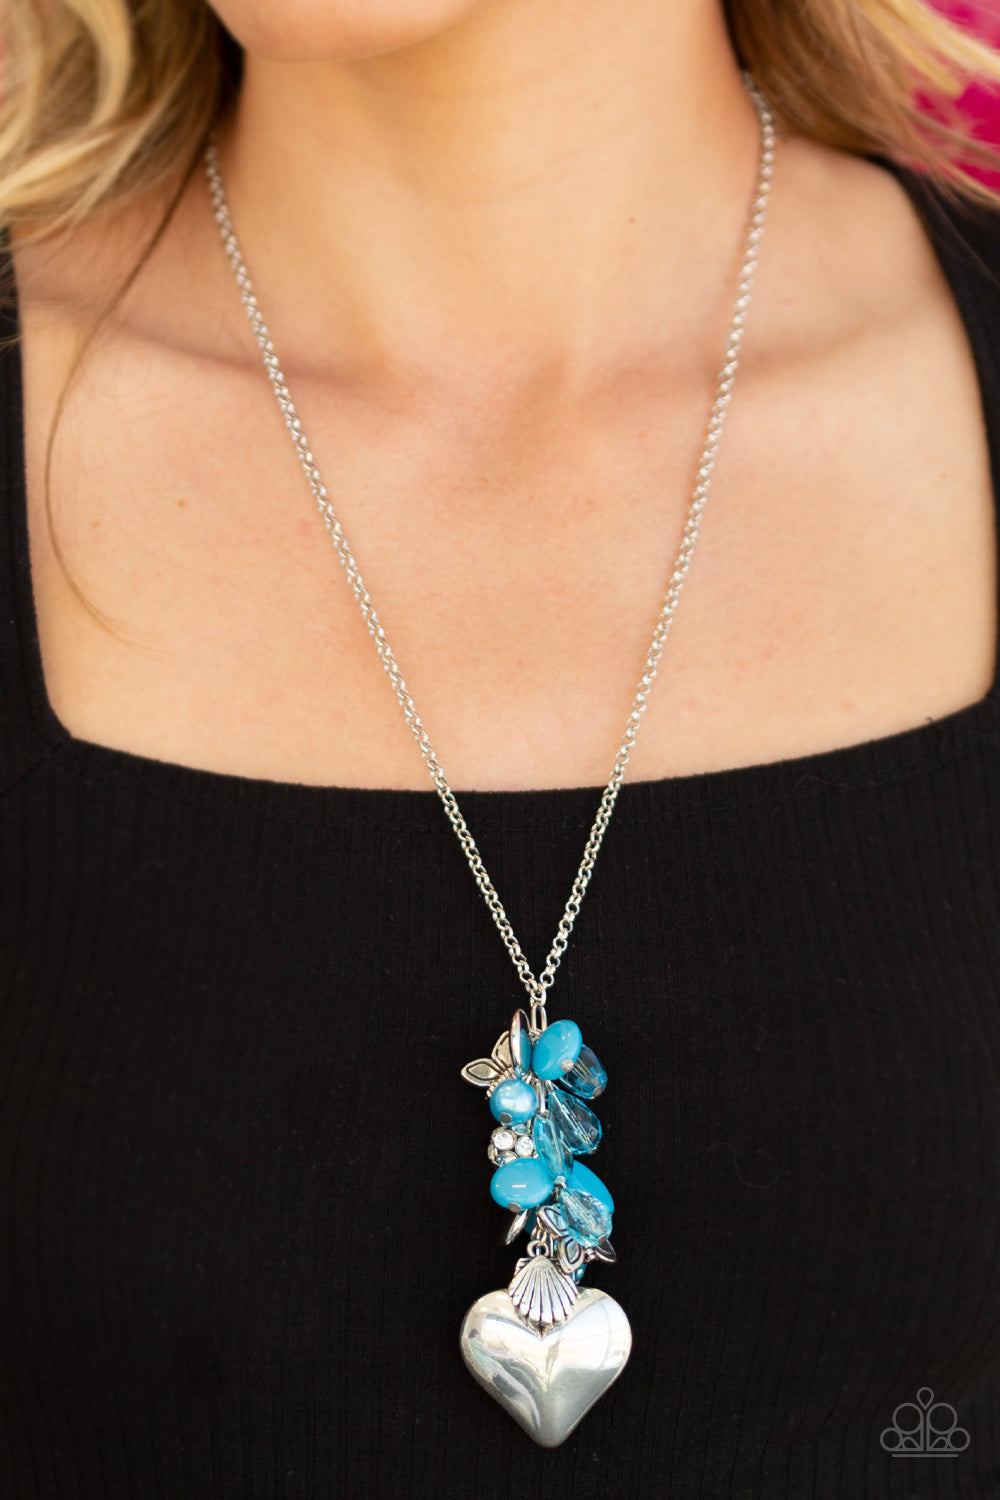 Paparazzi Beach Buzz - Blue Necklace with Charms